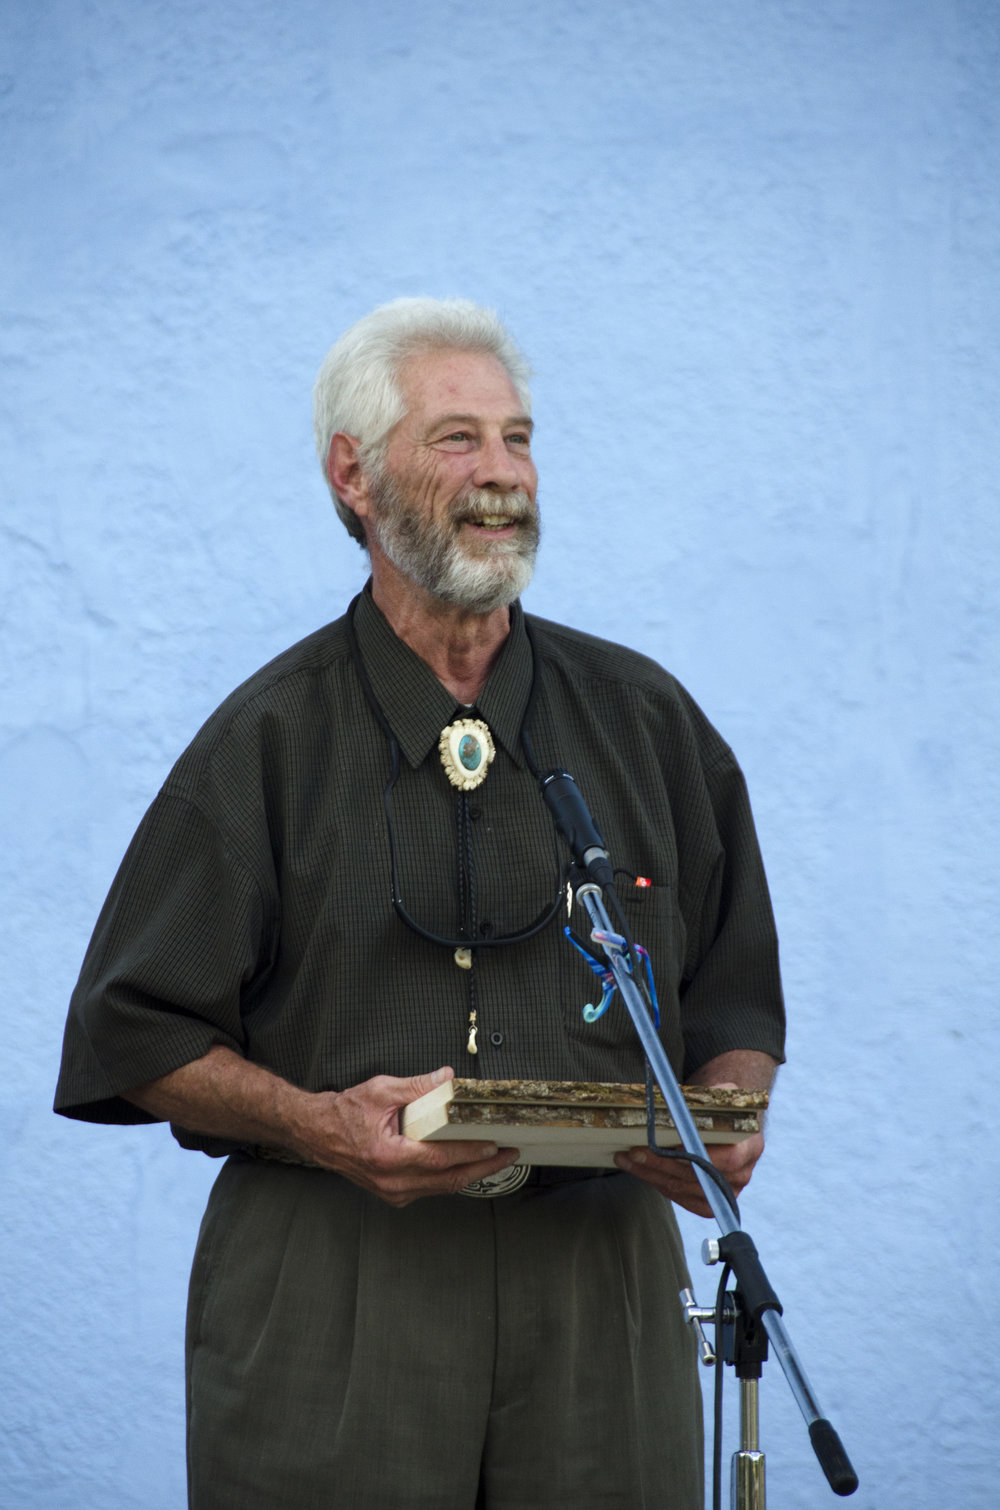 CITIZEN PLANNER AWARD. Ron Gardiner of Questa, New Mexico.  Photo by Rachel Girt.